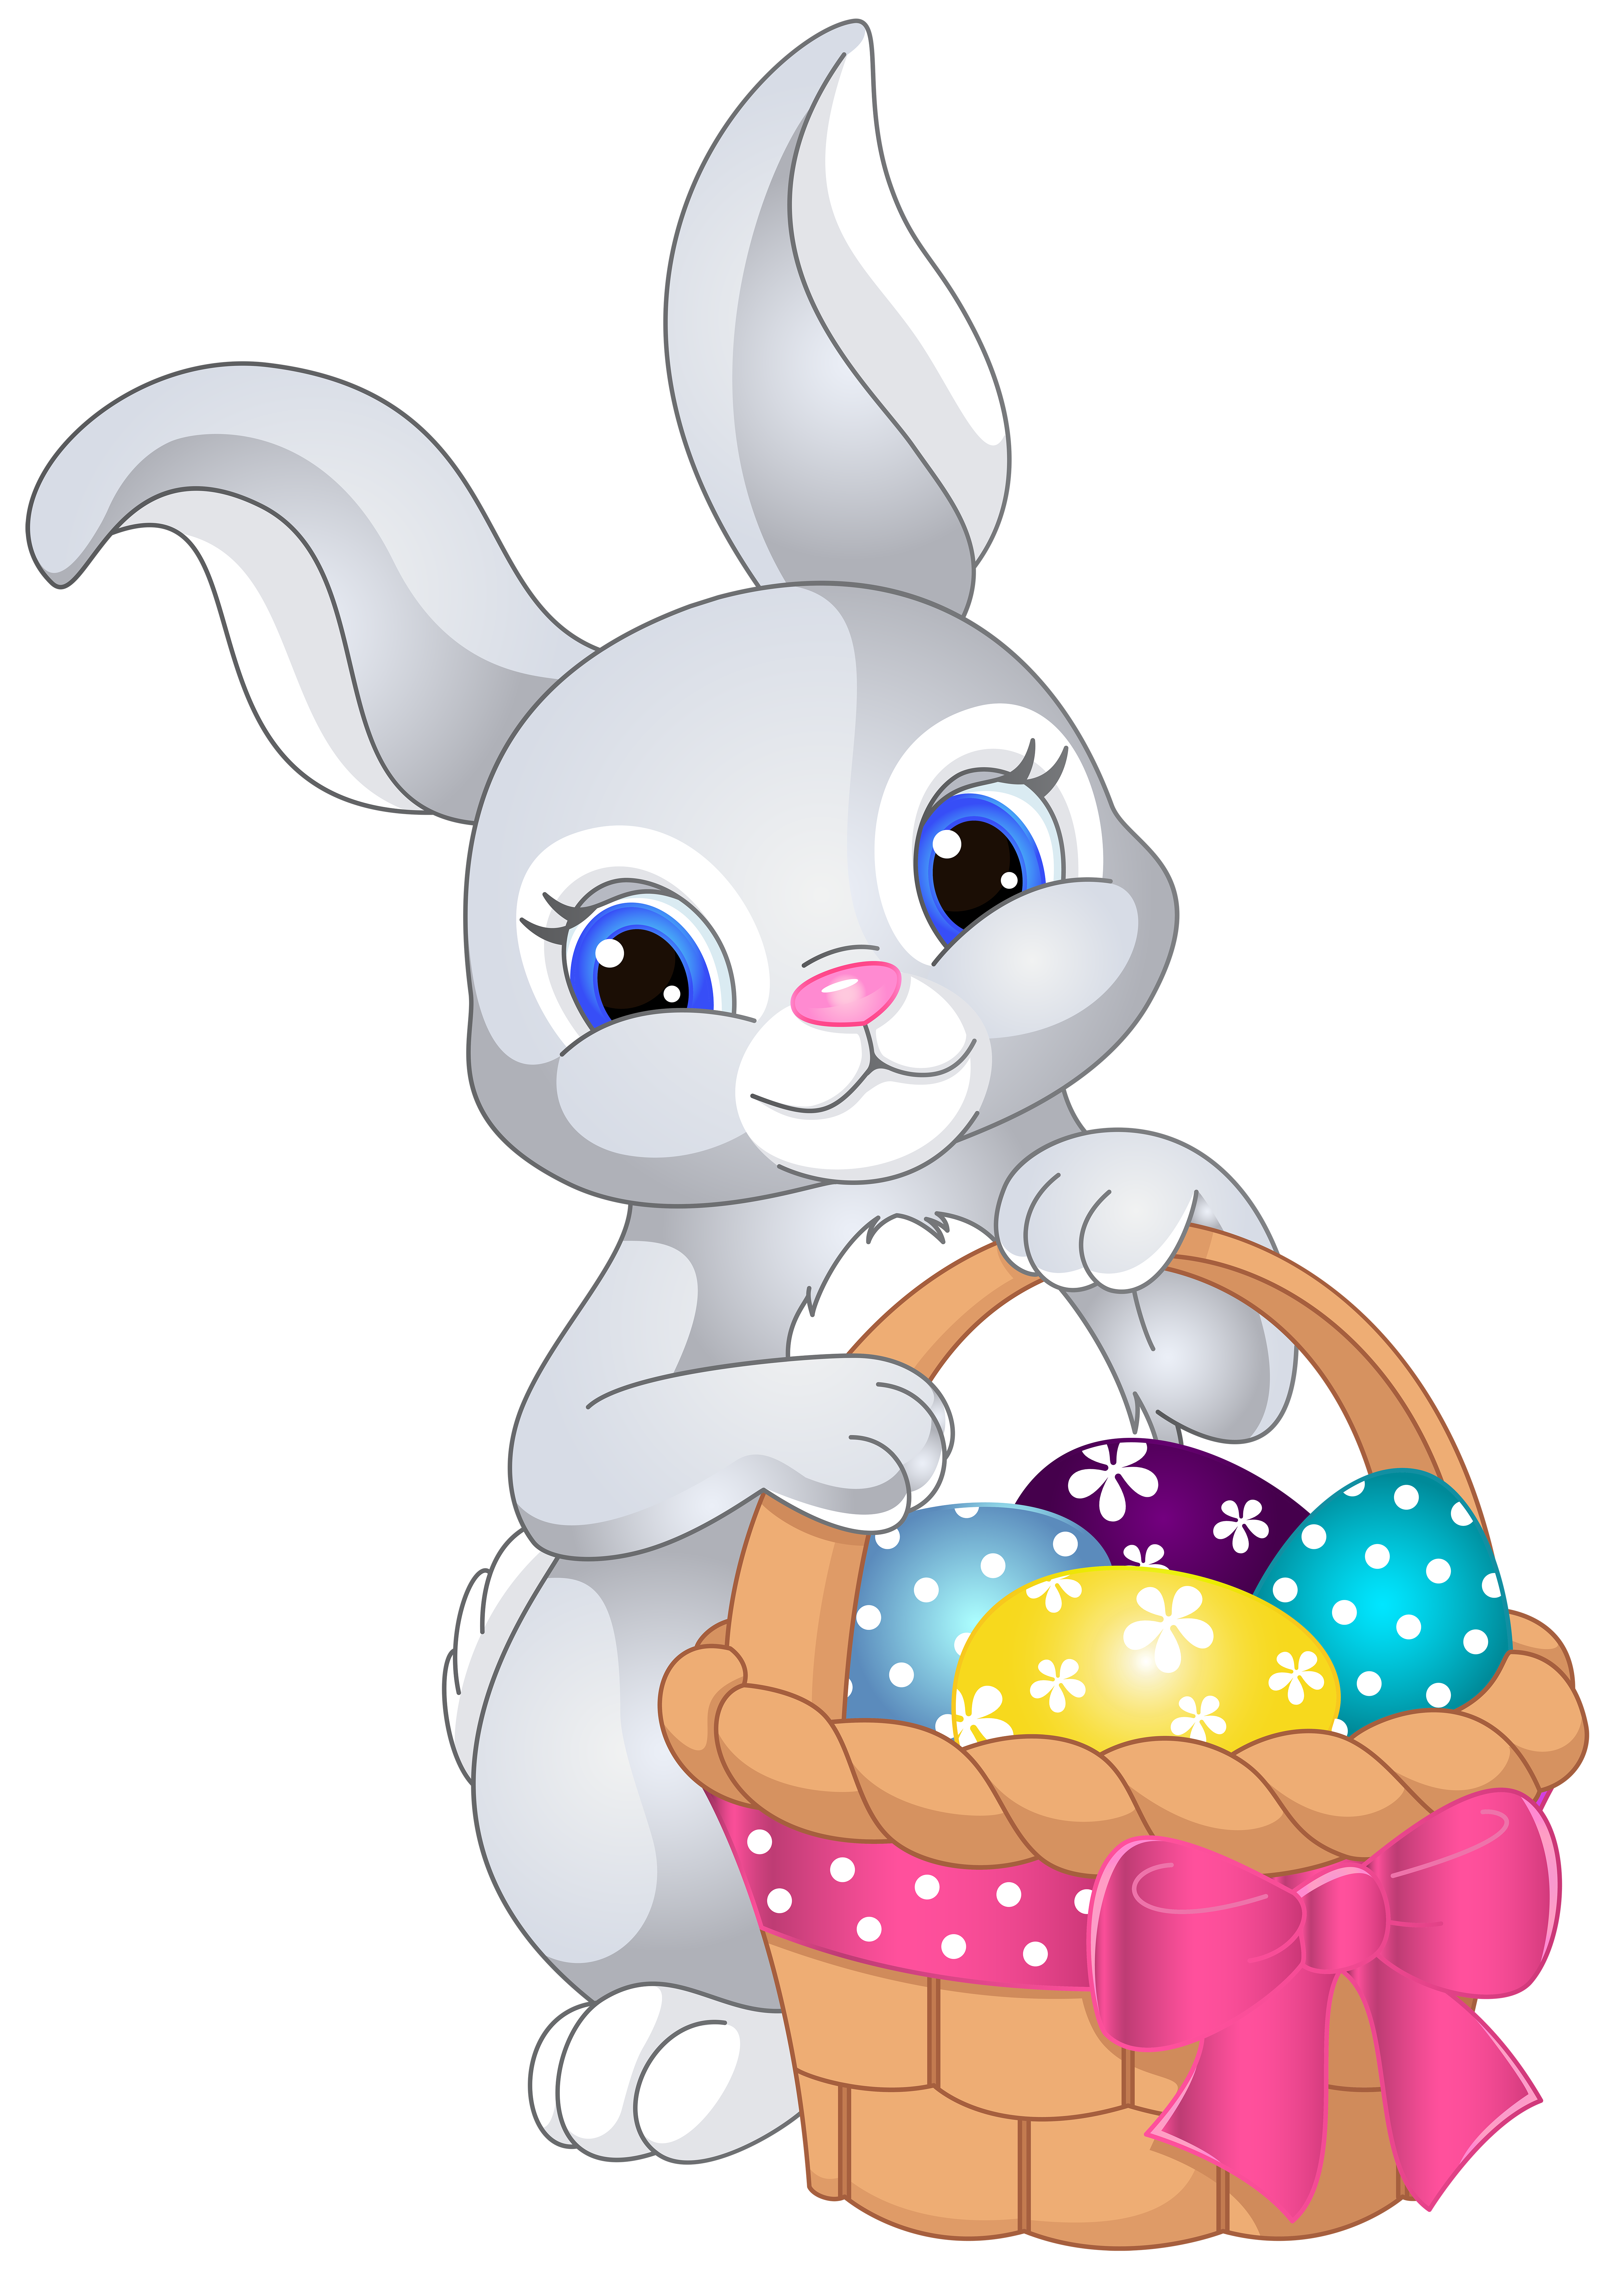 Easter with egg basket. Clipart bunny